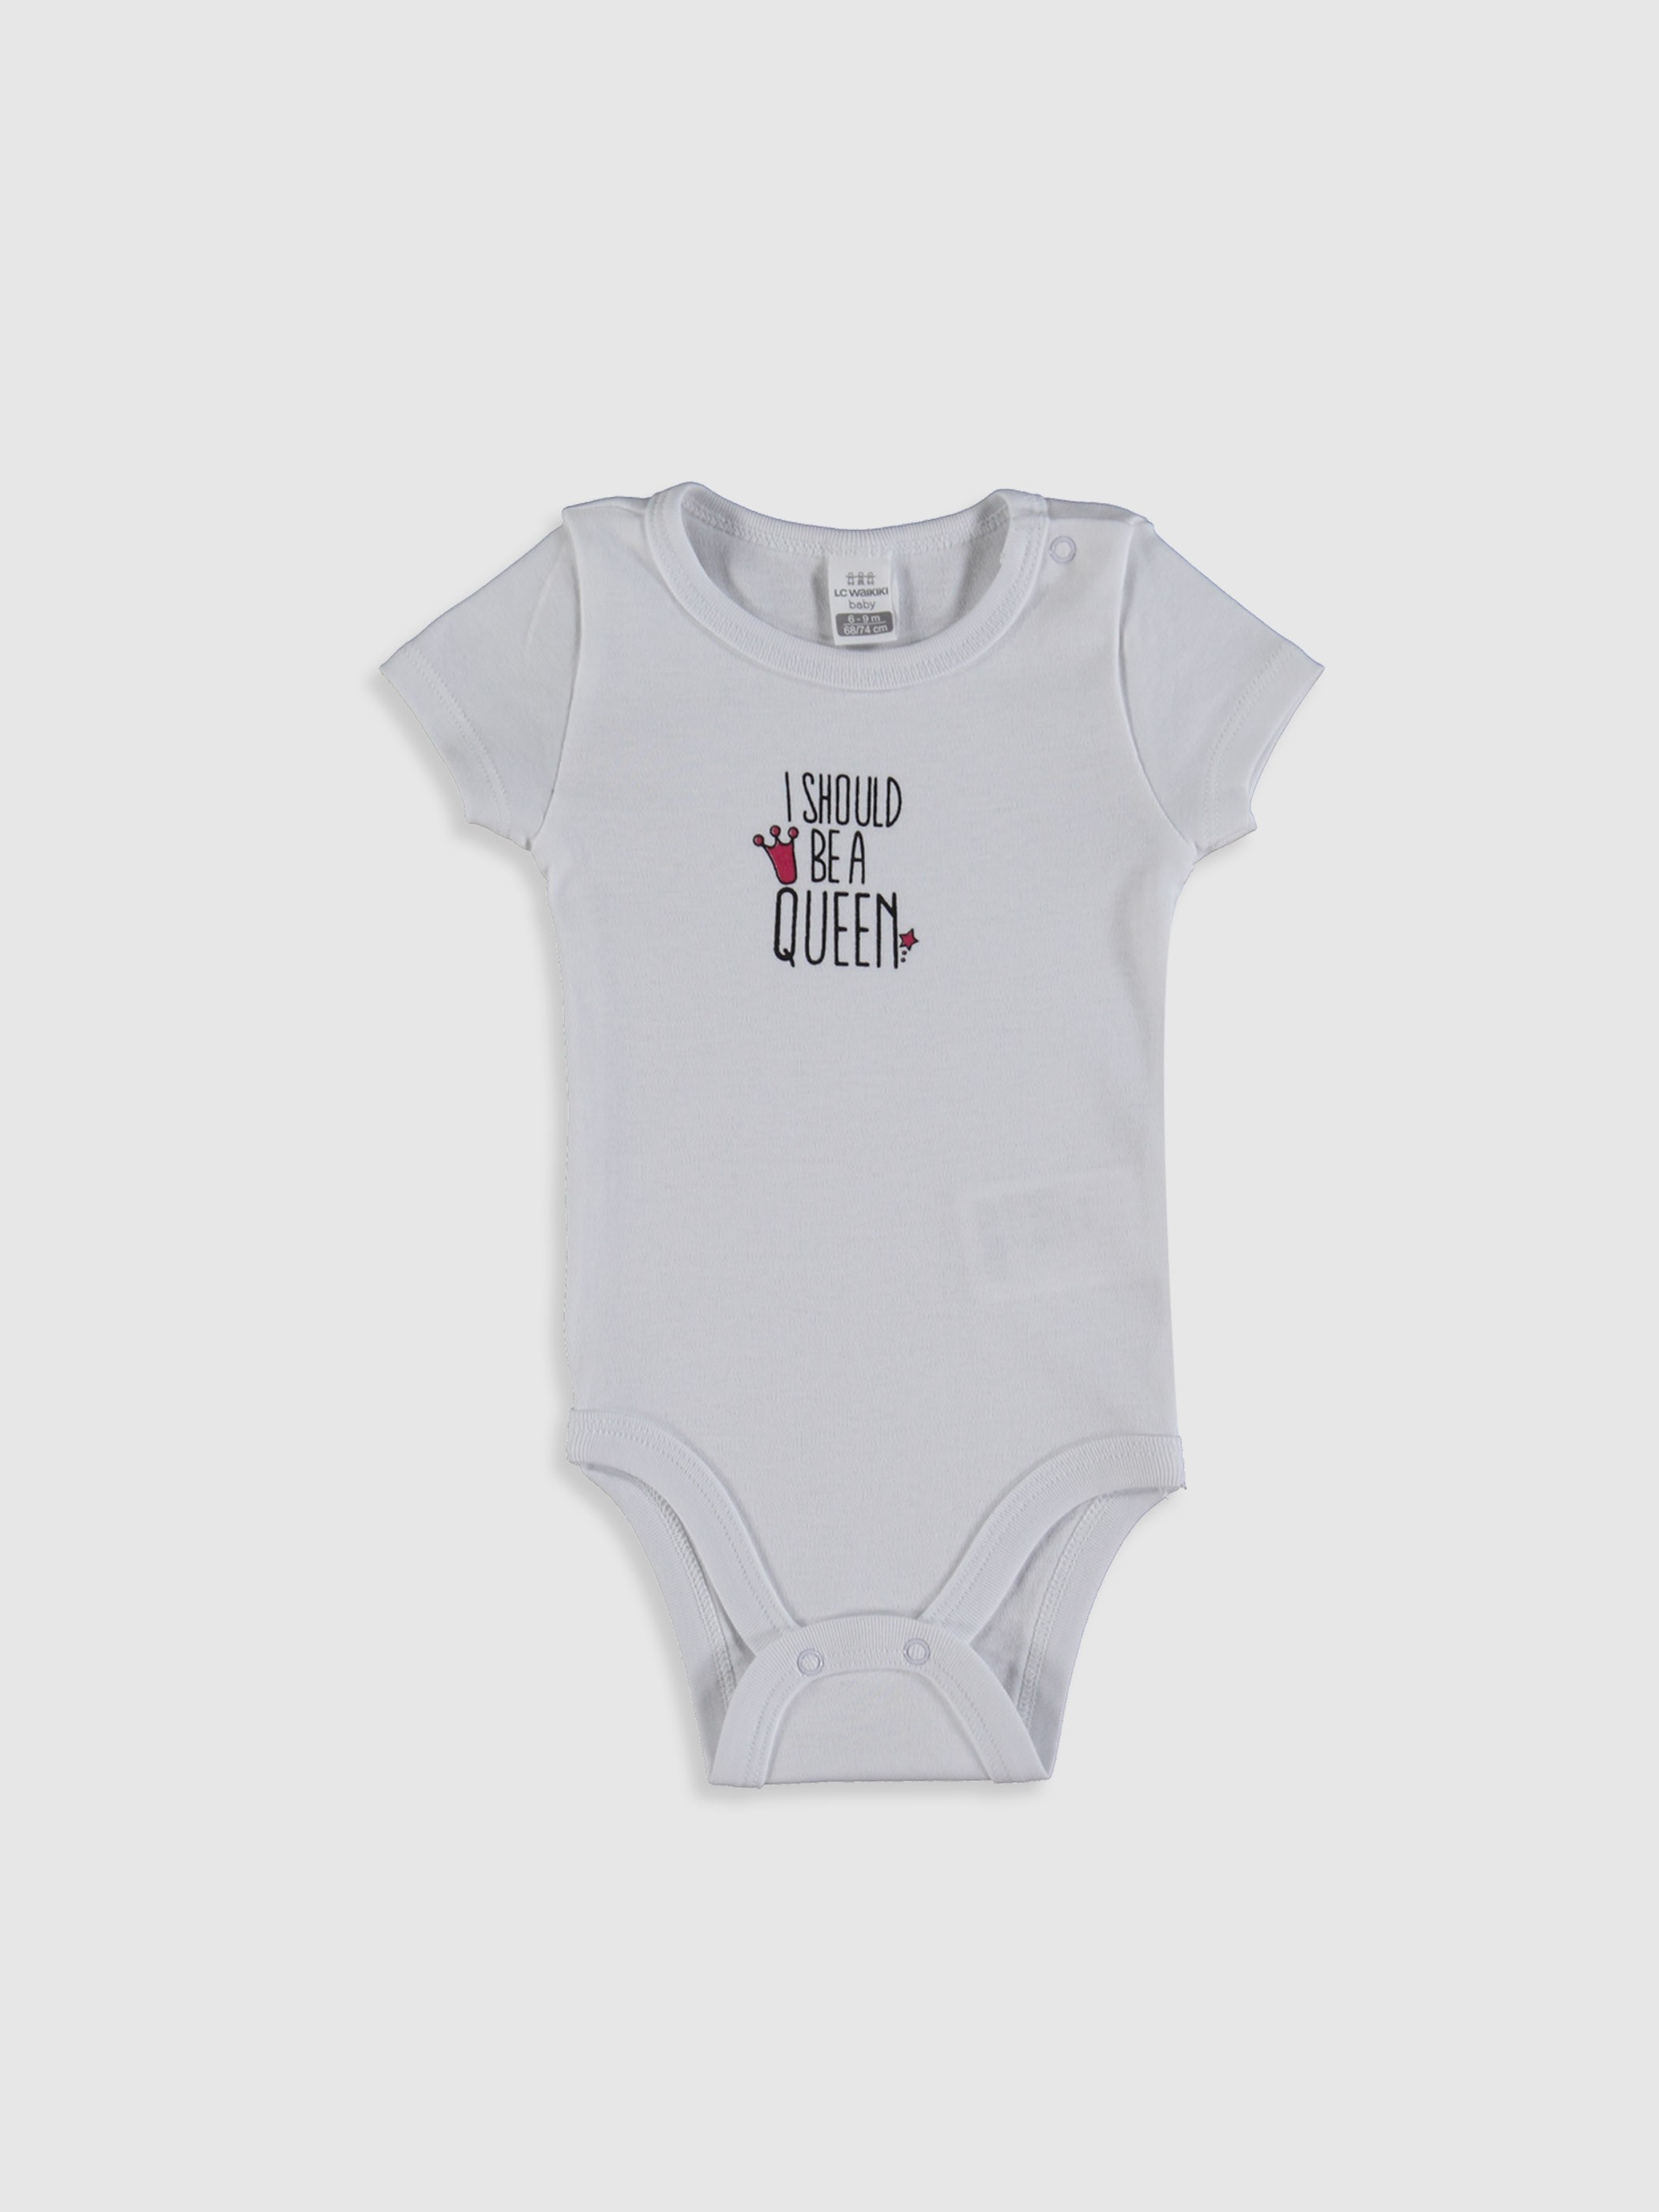 WHITE - Baby Girl's Printed Bodysuit - 0SE887Z1